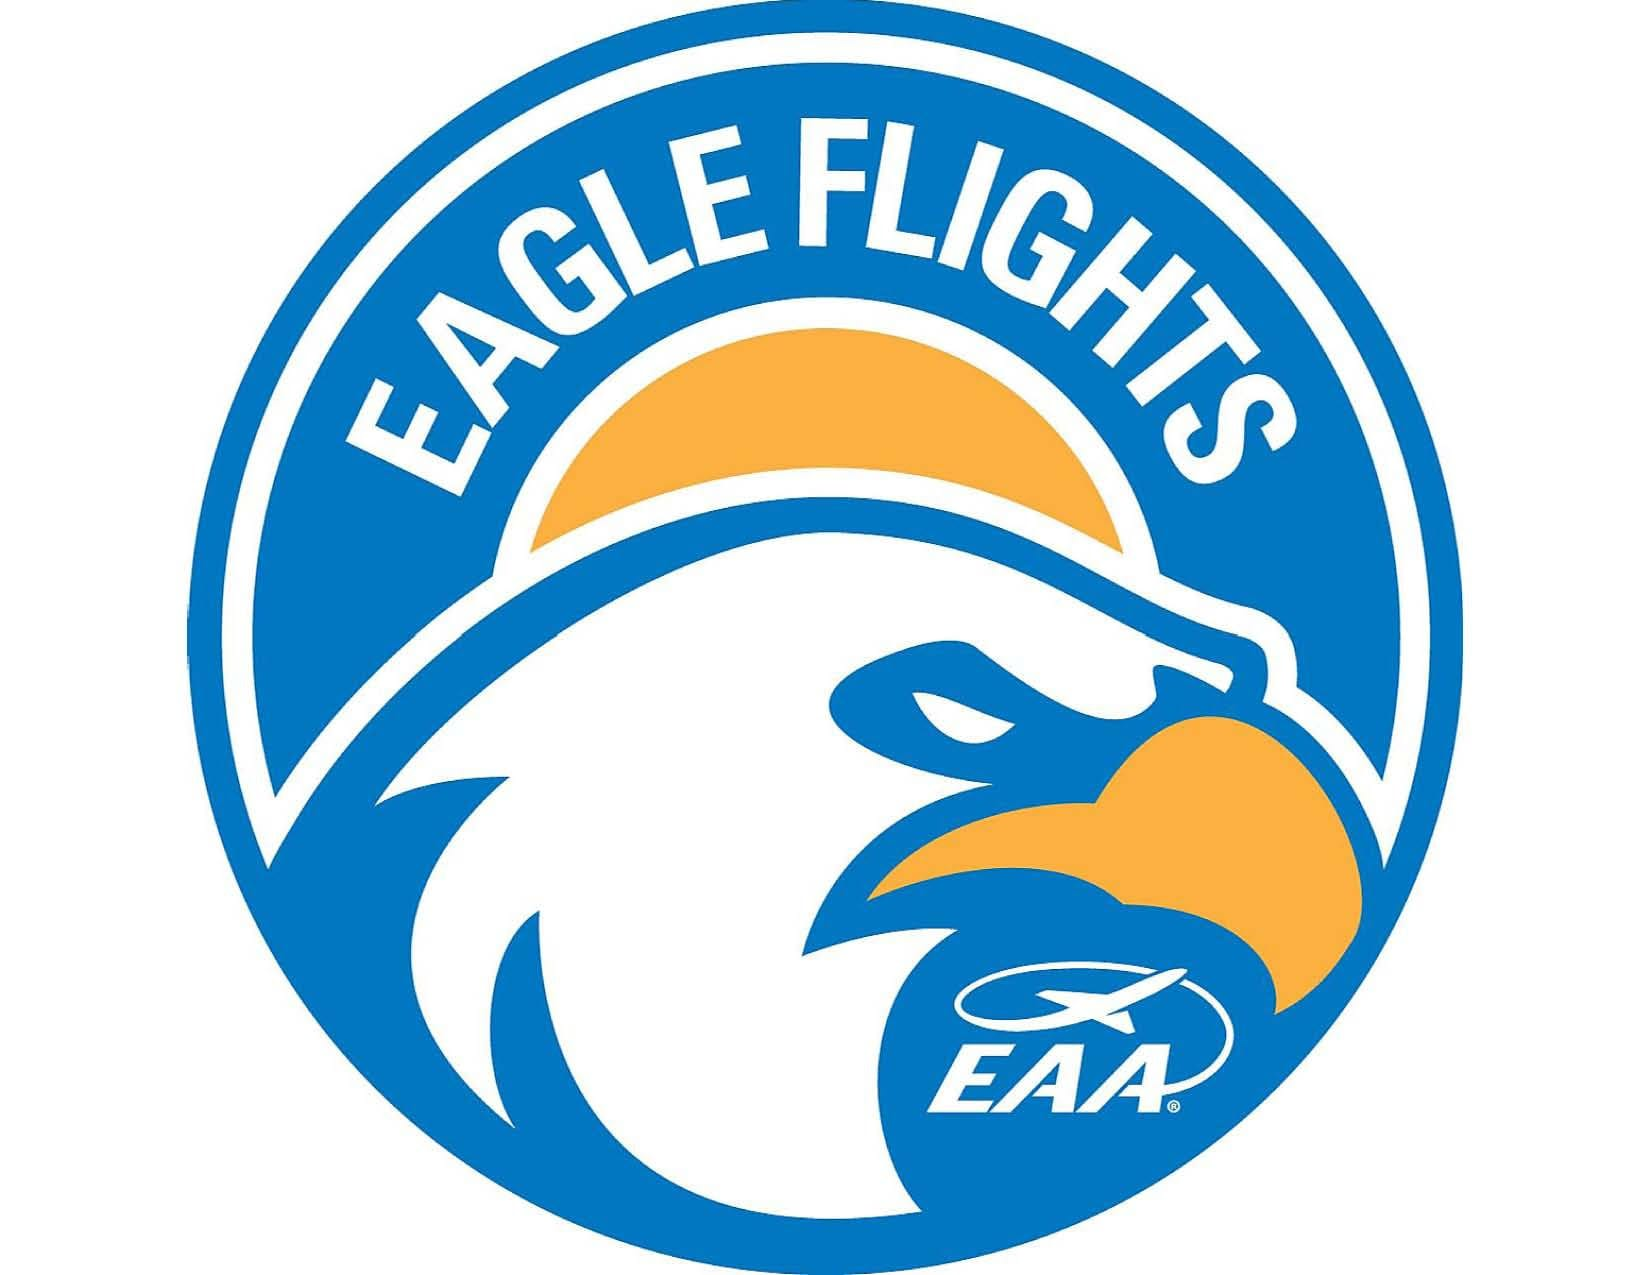 Sennheiser continues support of Eagle Flights